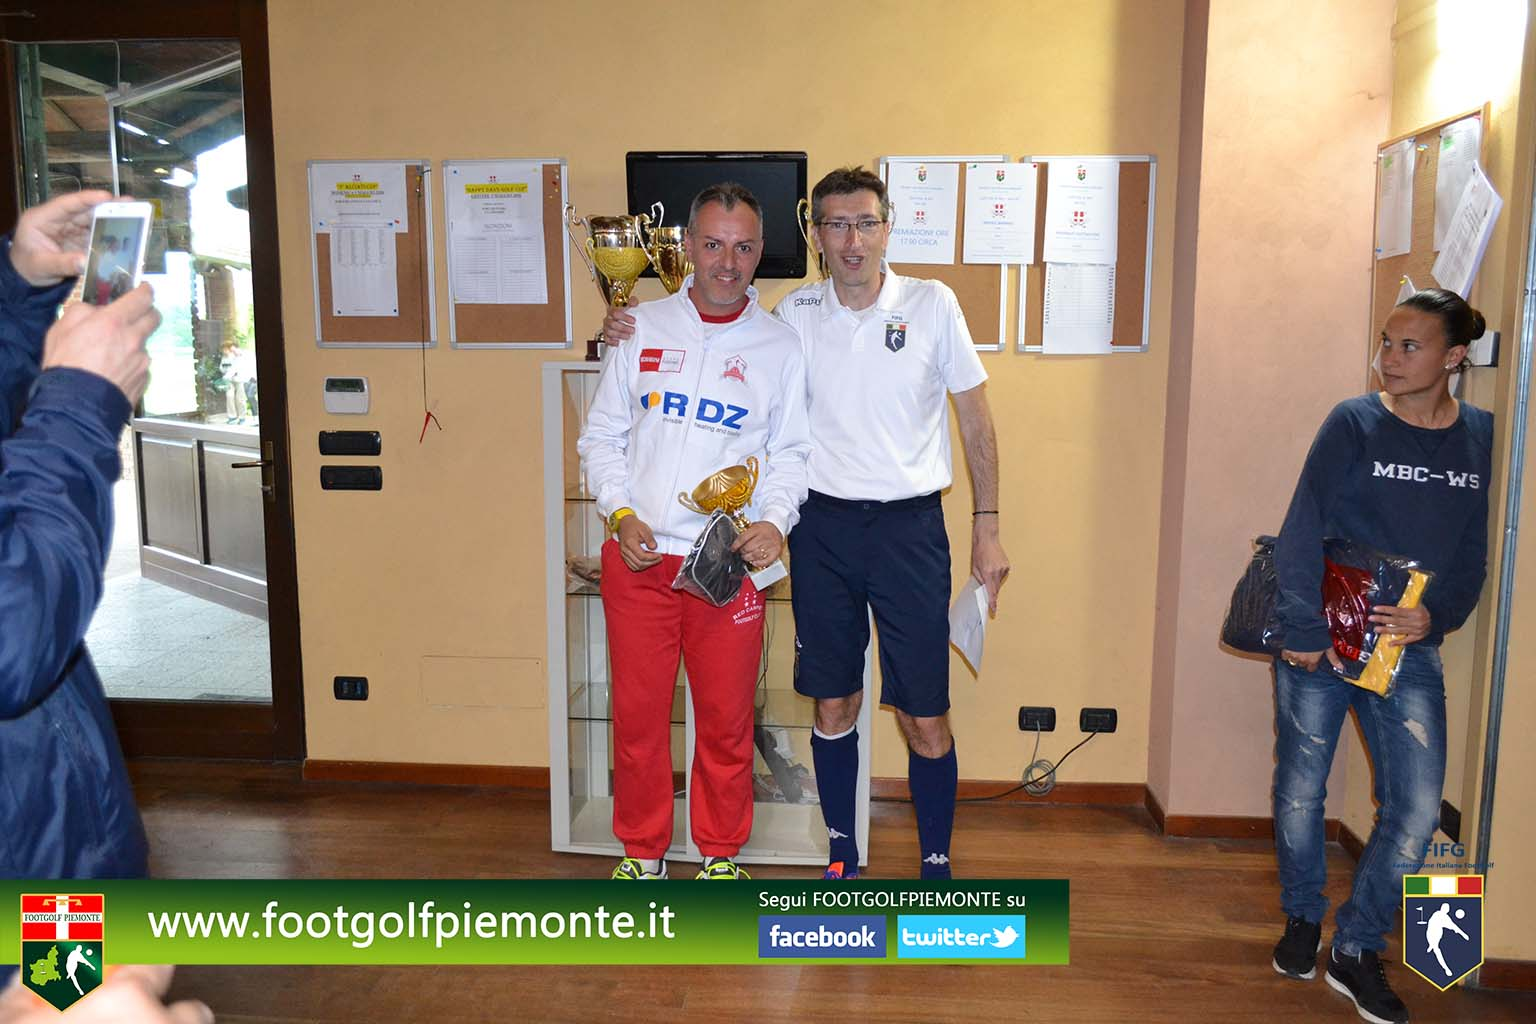 FOTO 9 Regions' Cup Footgolf Piemonte 2016 Golf Città di Asti (At) 30apr16-123